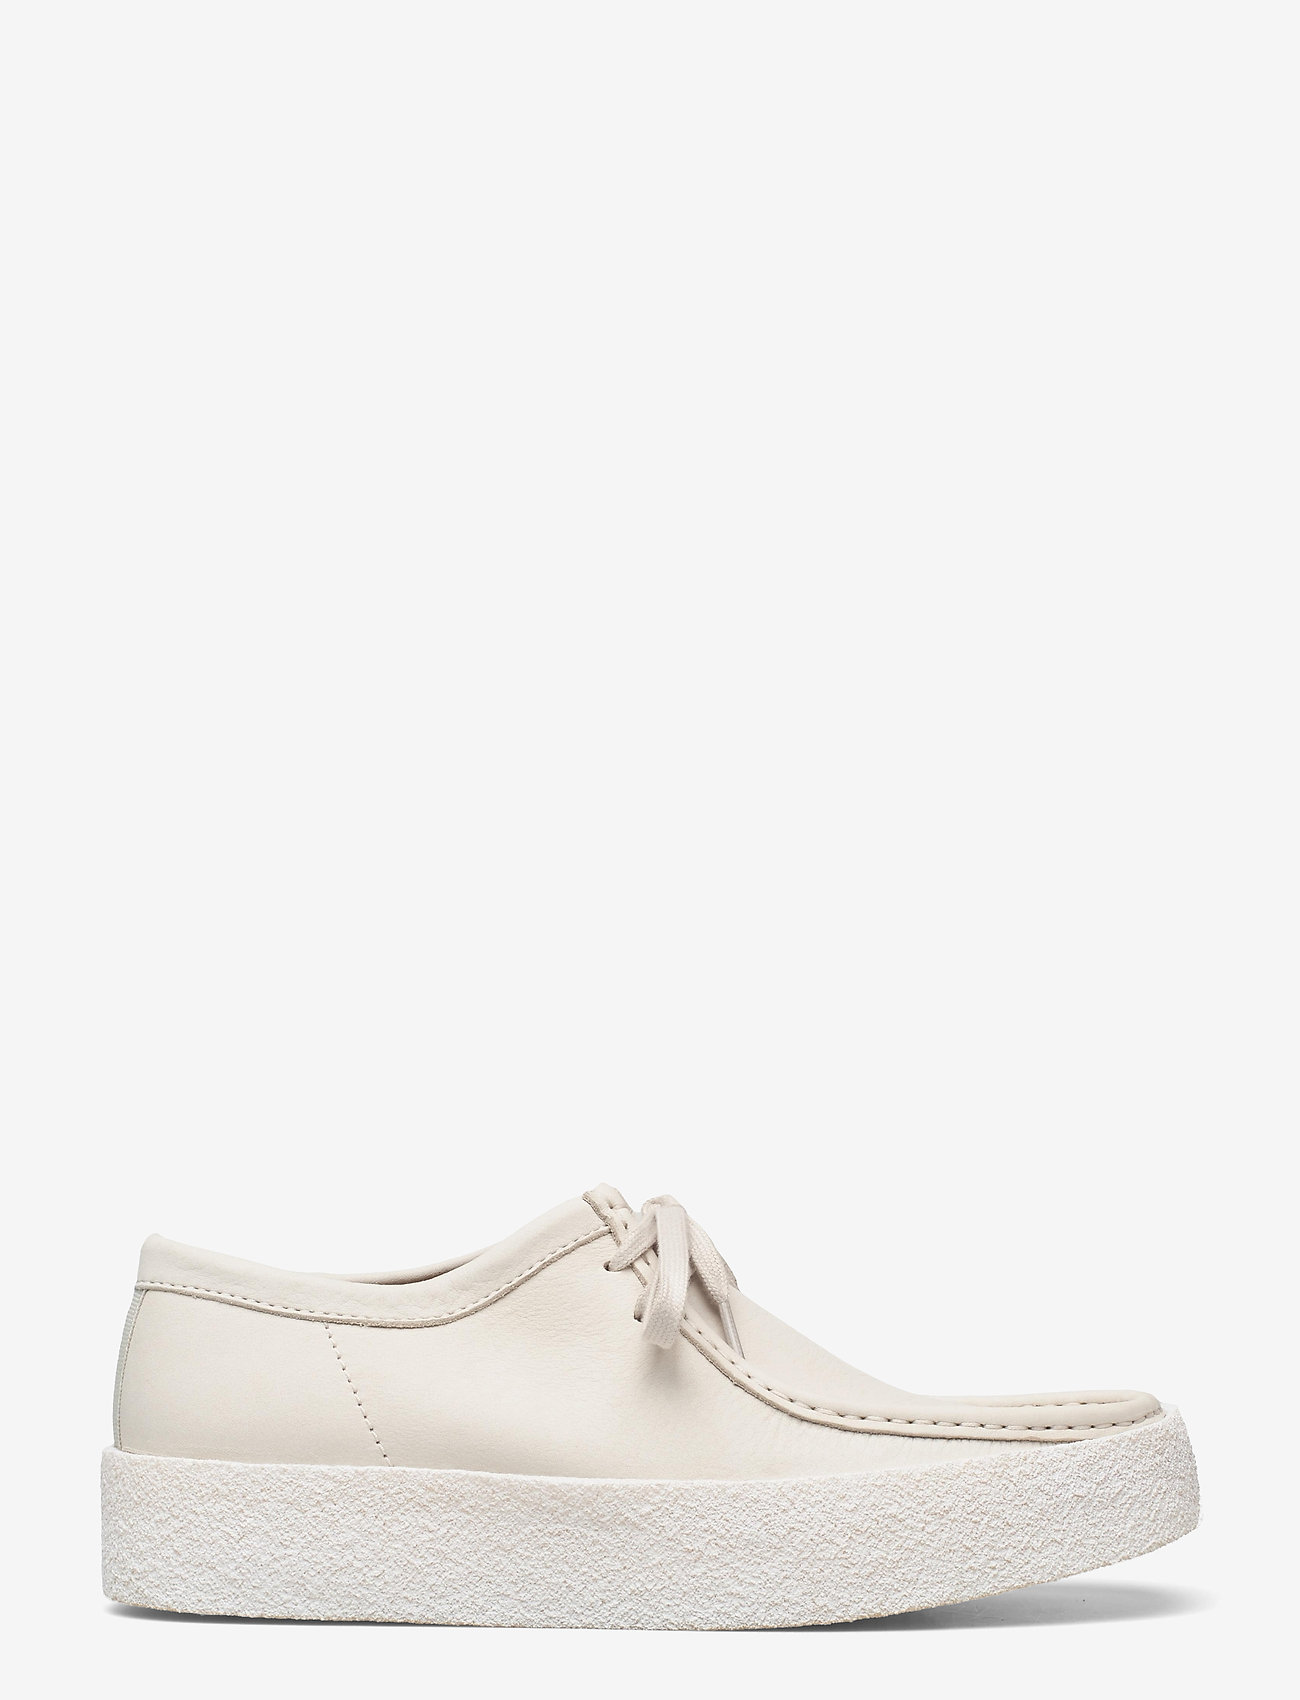 Clarks Originals - Wallabee Cup - skor - white nubuck - 1